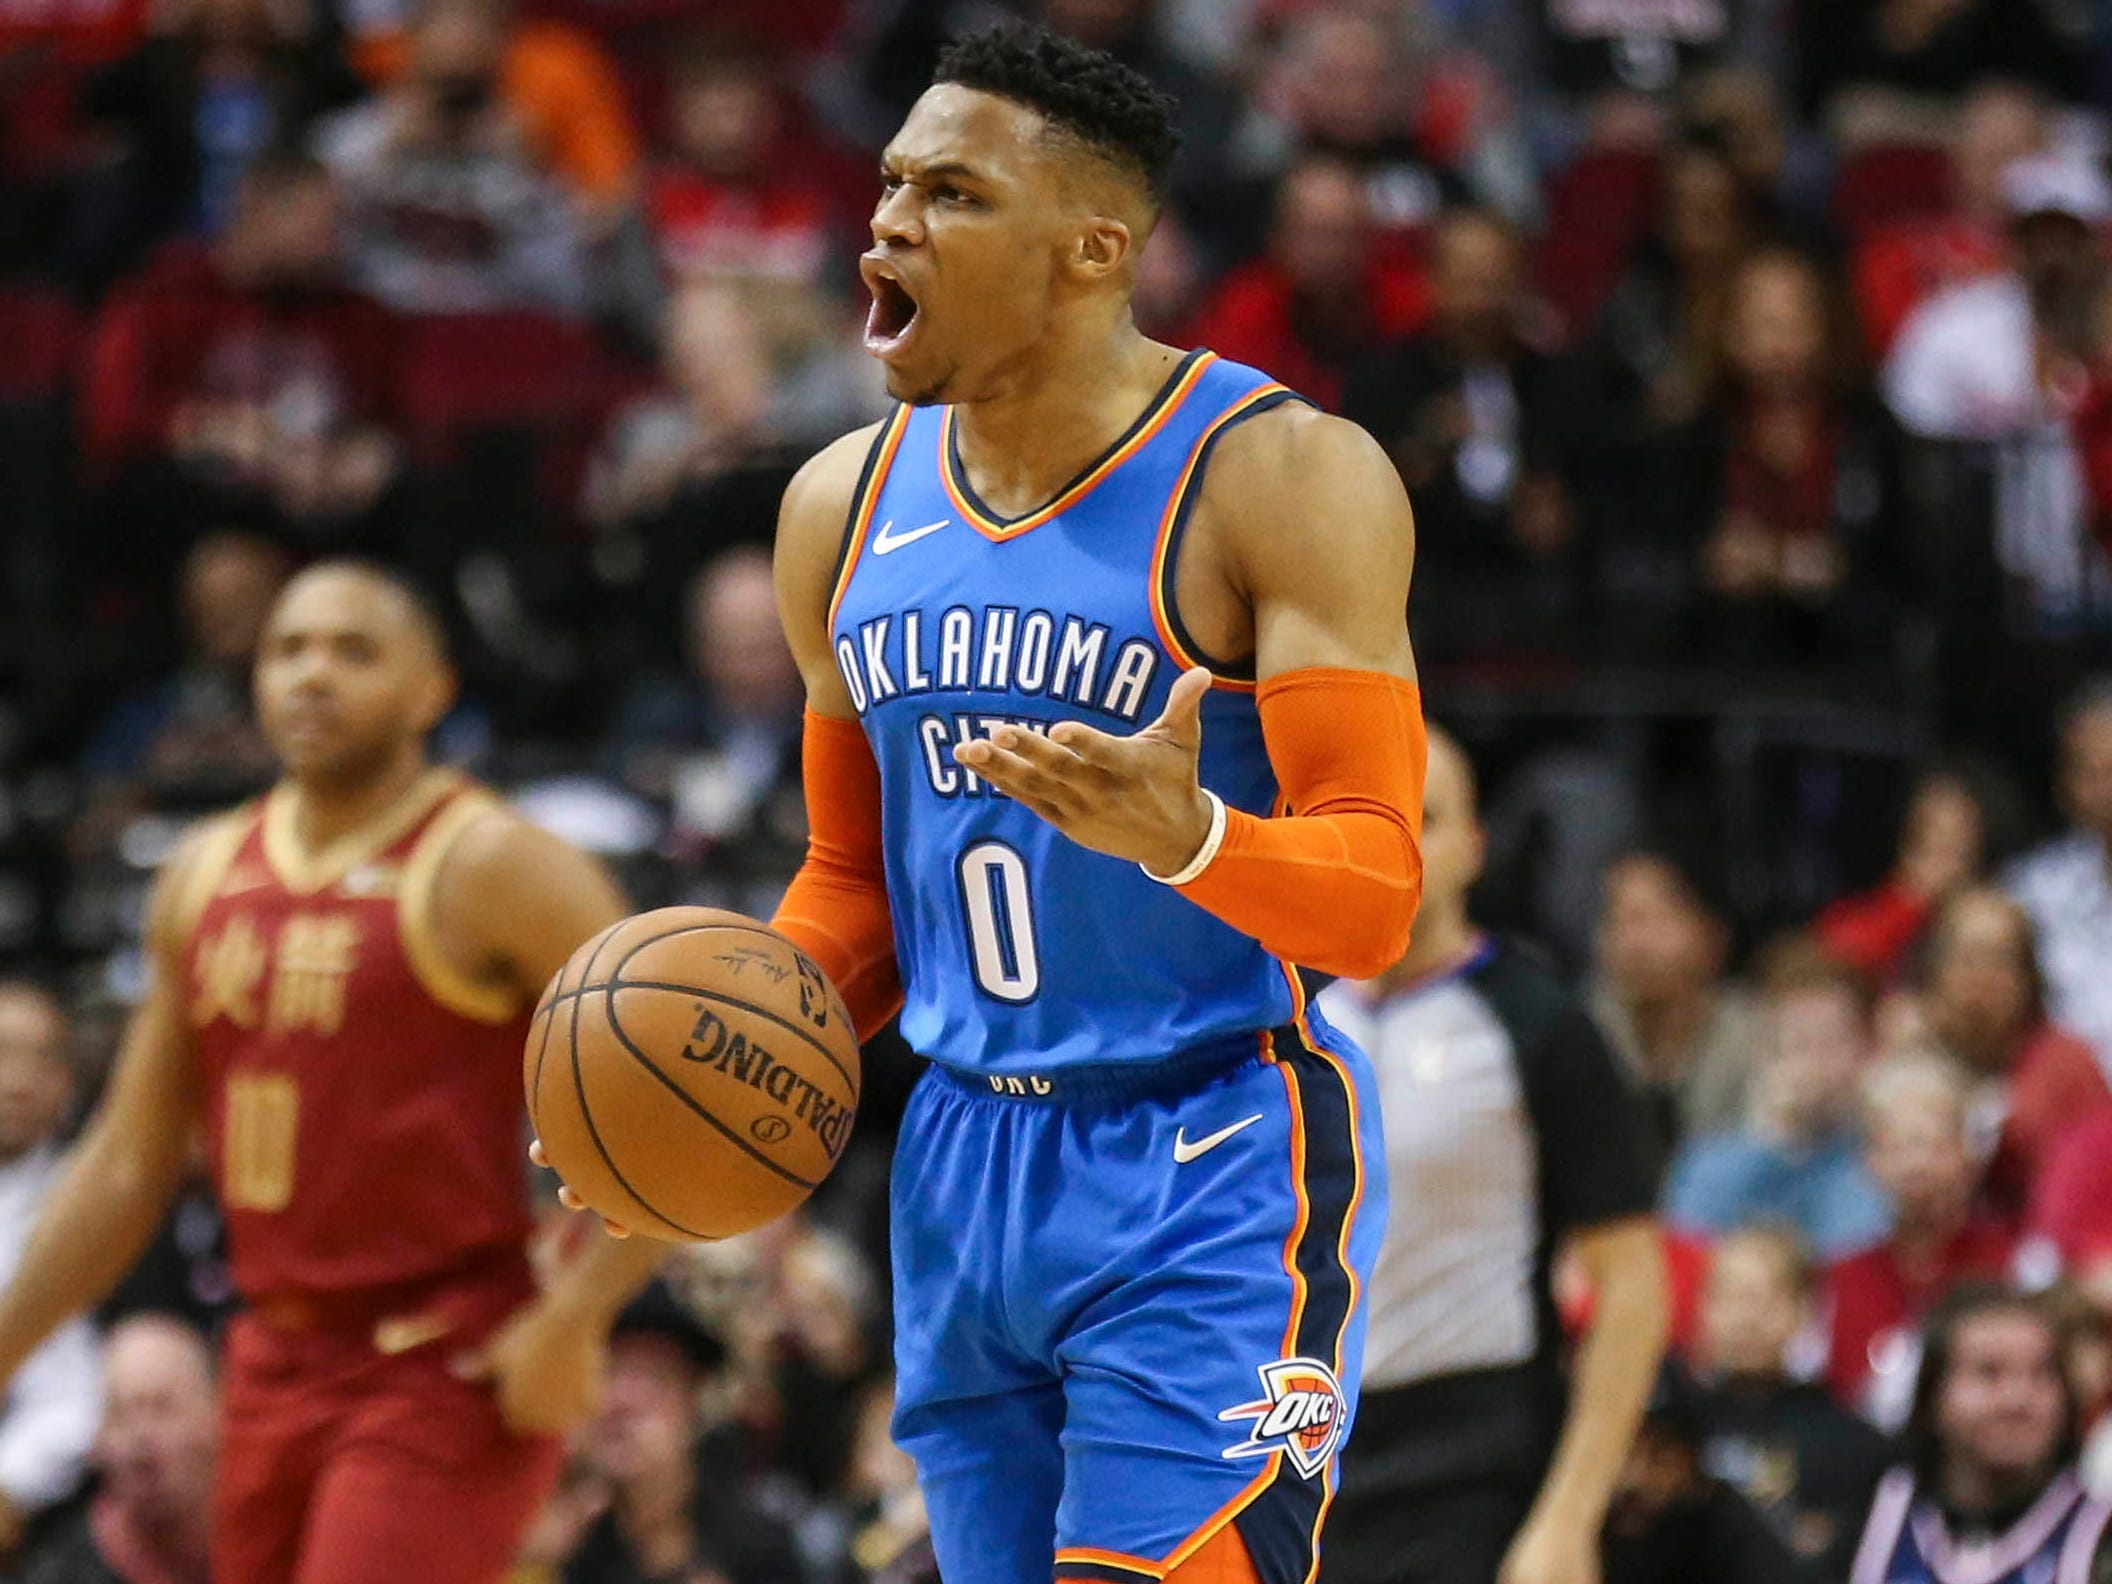 79. Russell Westbrook, Thunder (Feb. 9): 21 points, 12 rebounds, 11 assists in 117-112 win over Rockets (22nd of season).